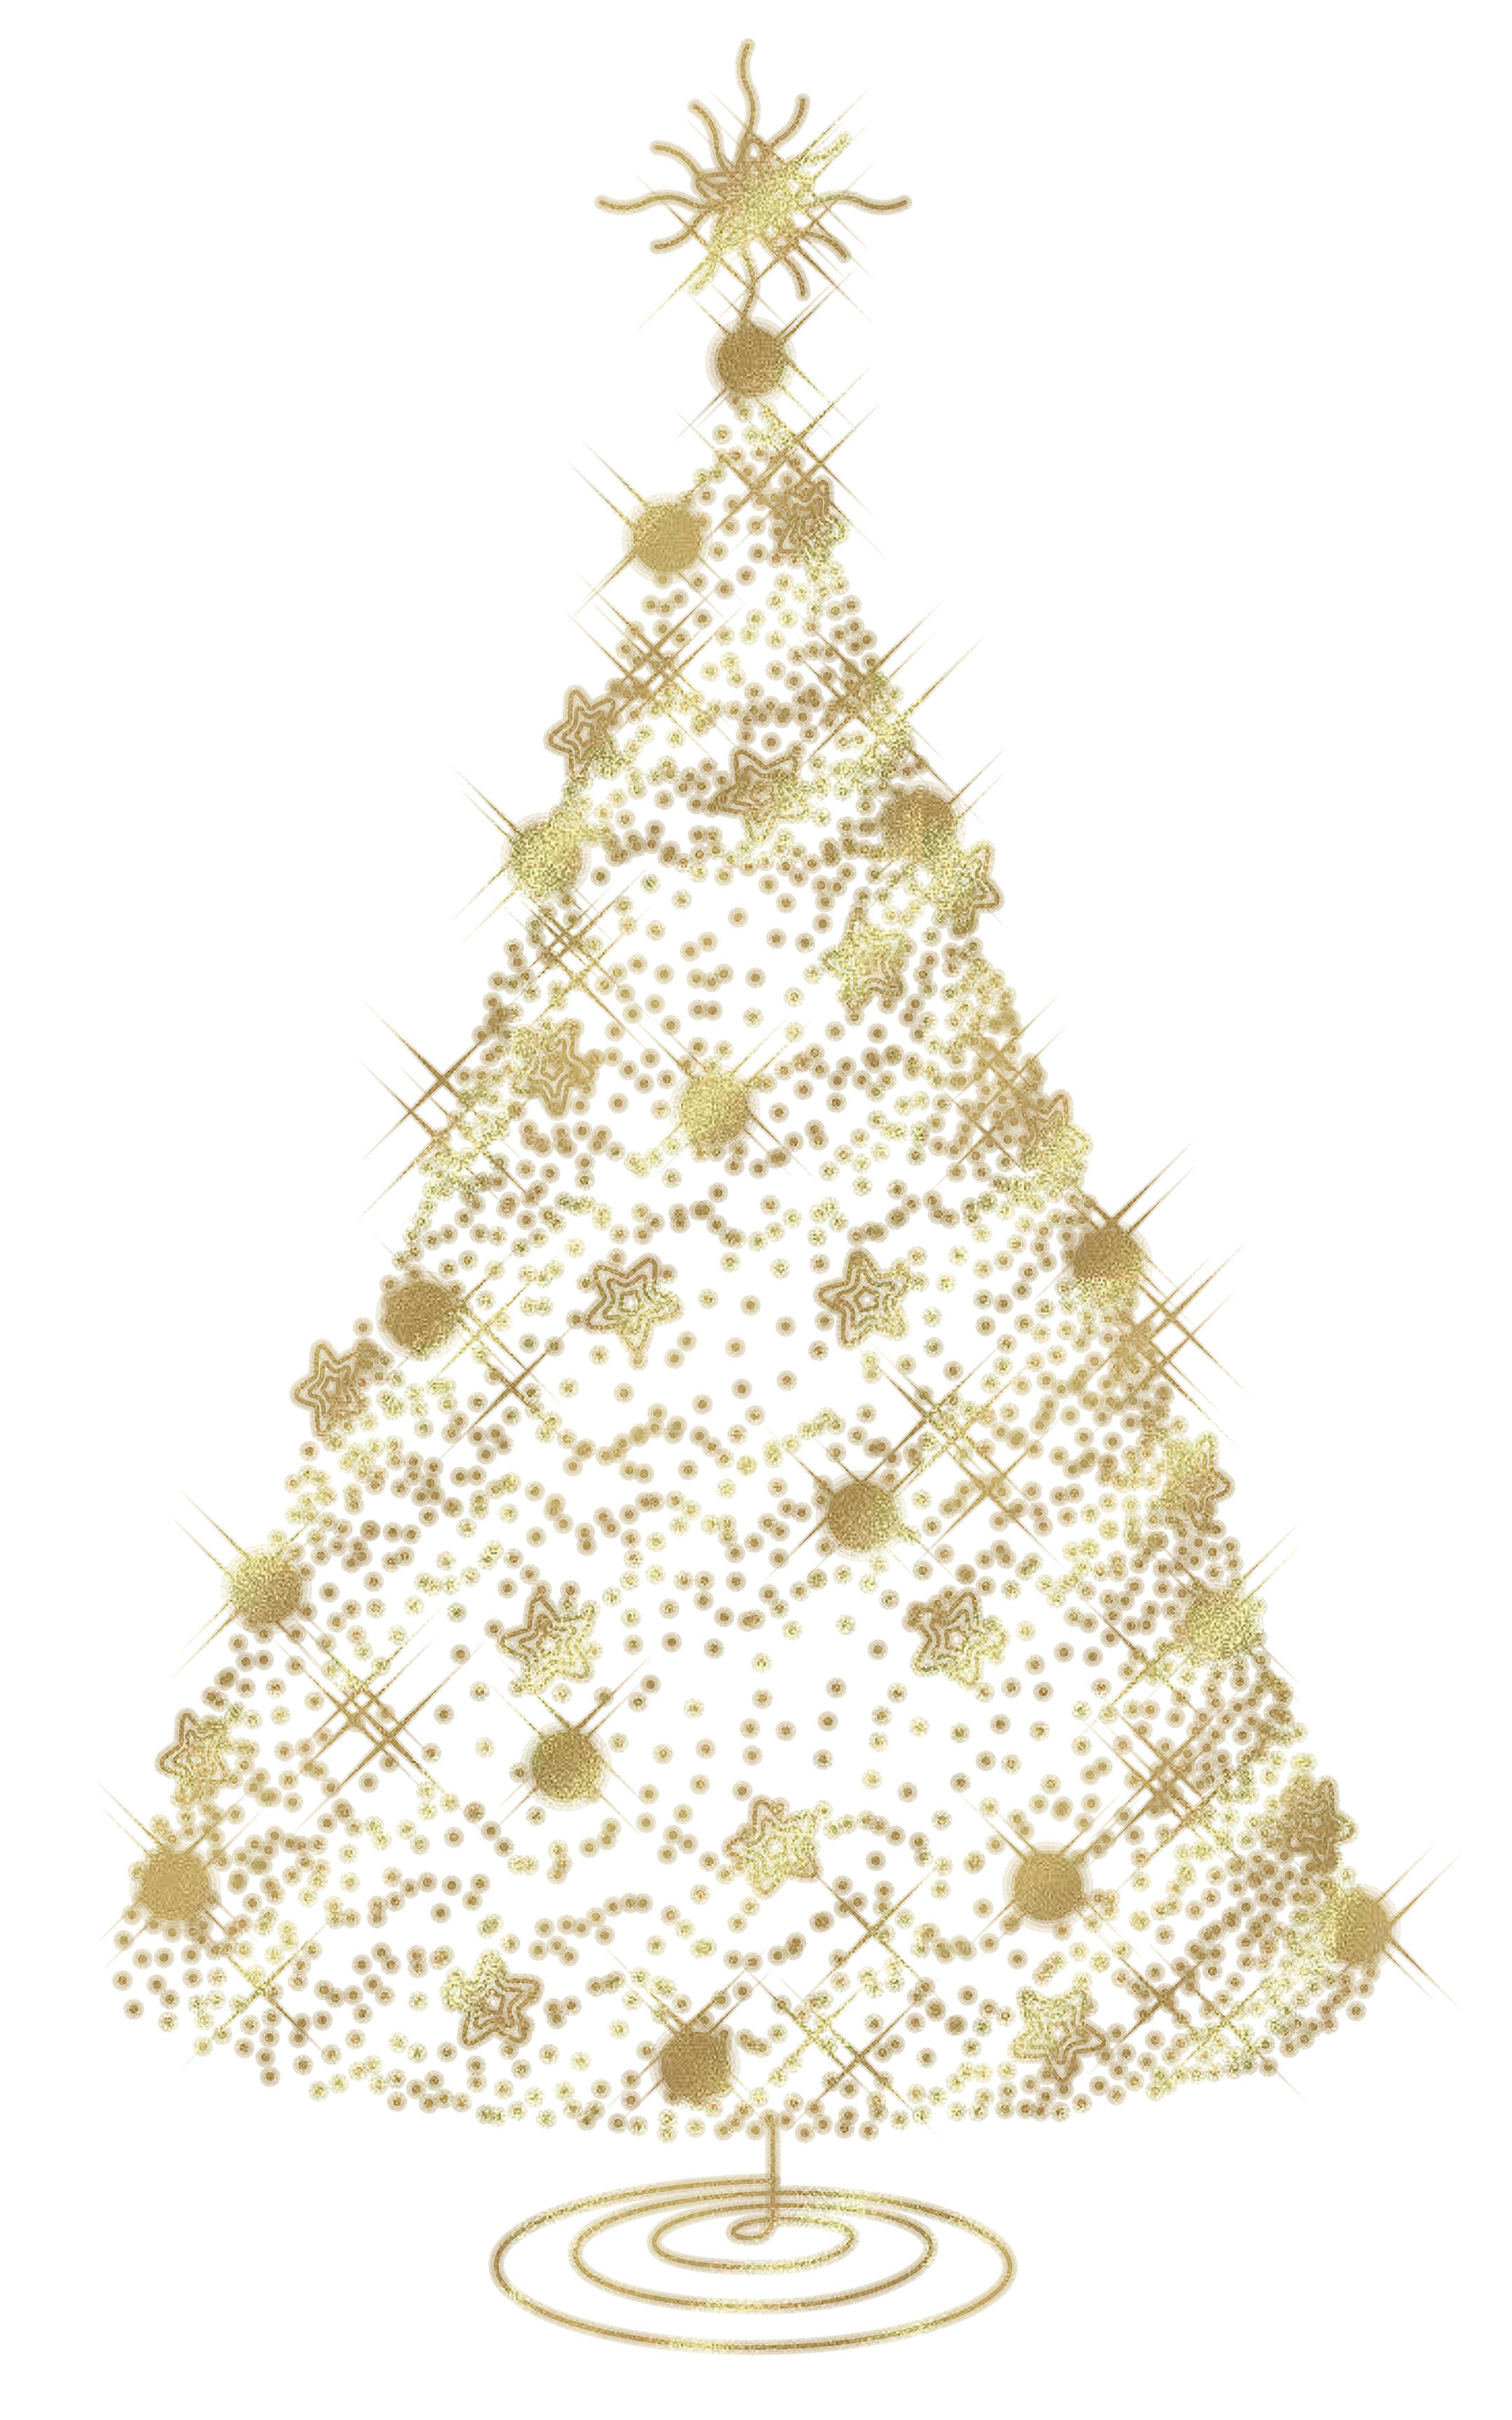 Fancy White Christmas Ornaments Background Transparent Png Clipart